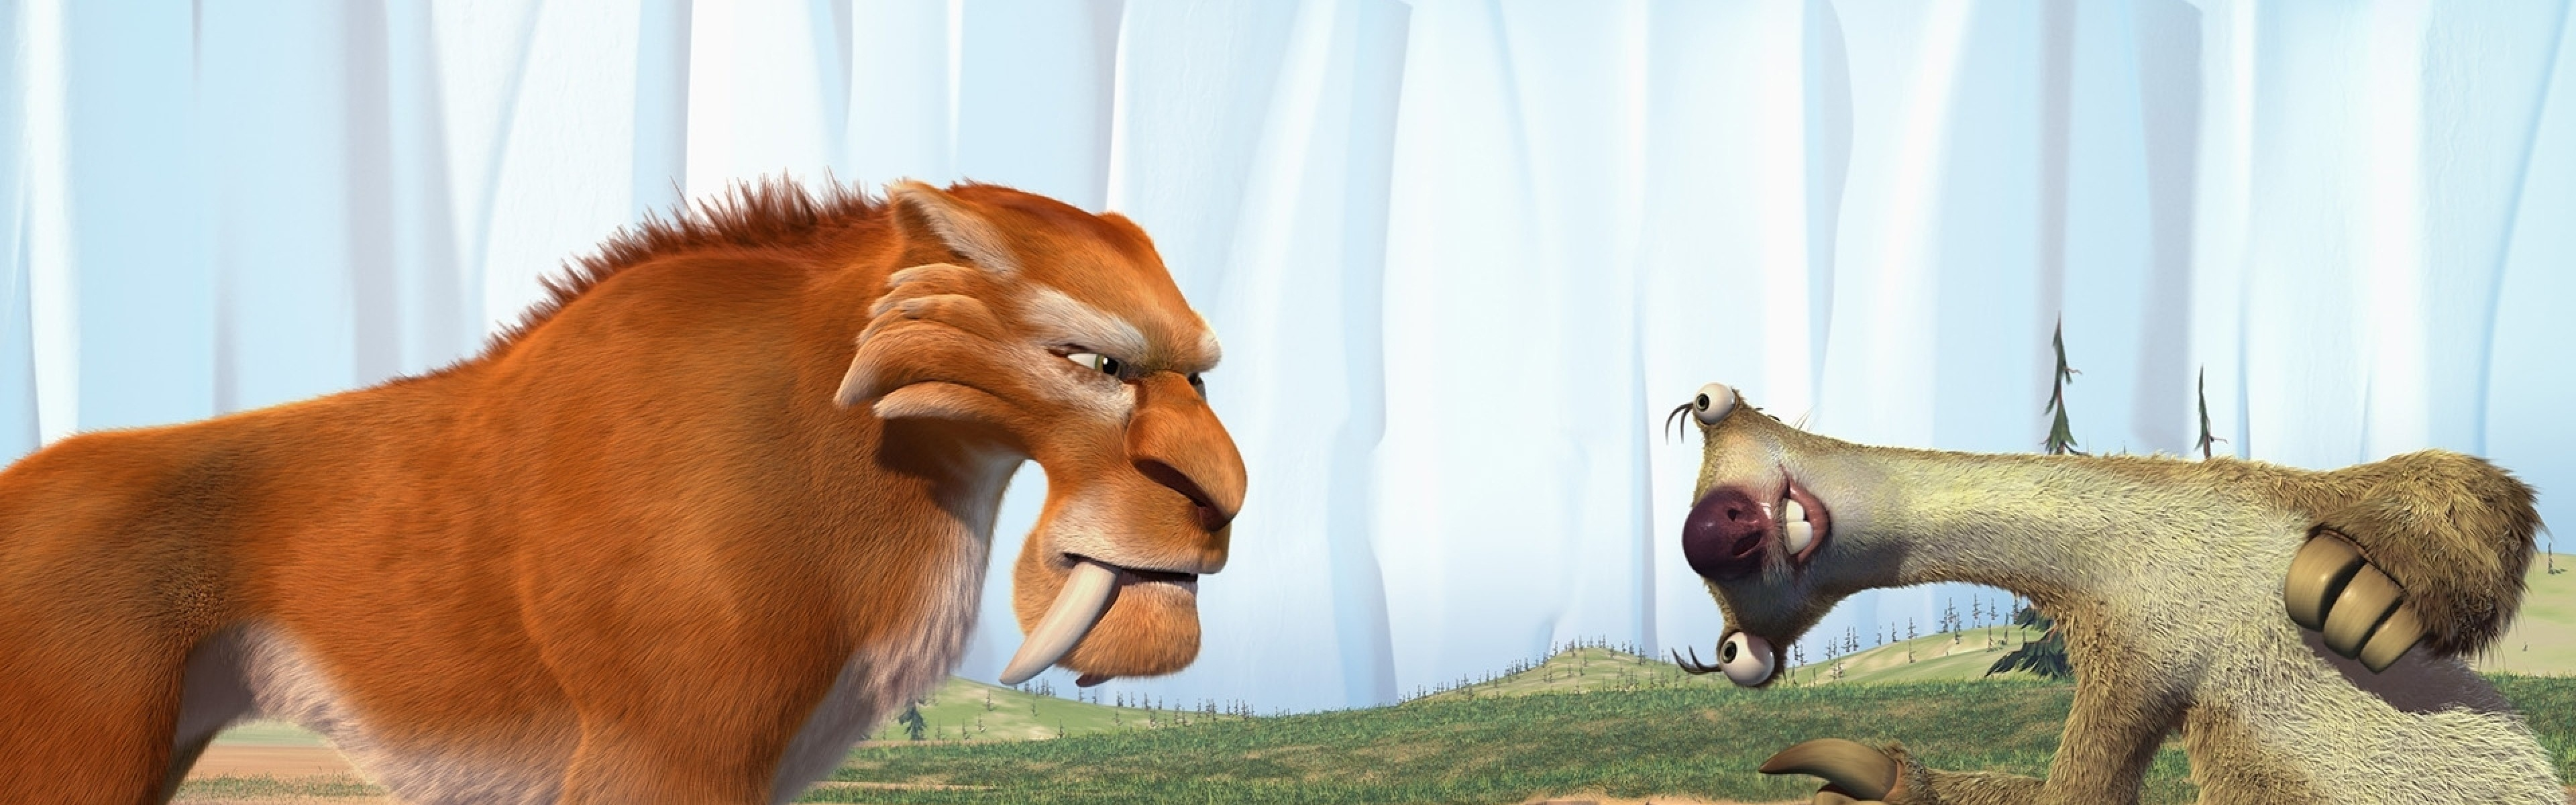 Wallpaper ice age, diego, sid, saber-toothed tiger, sloth